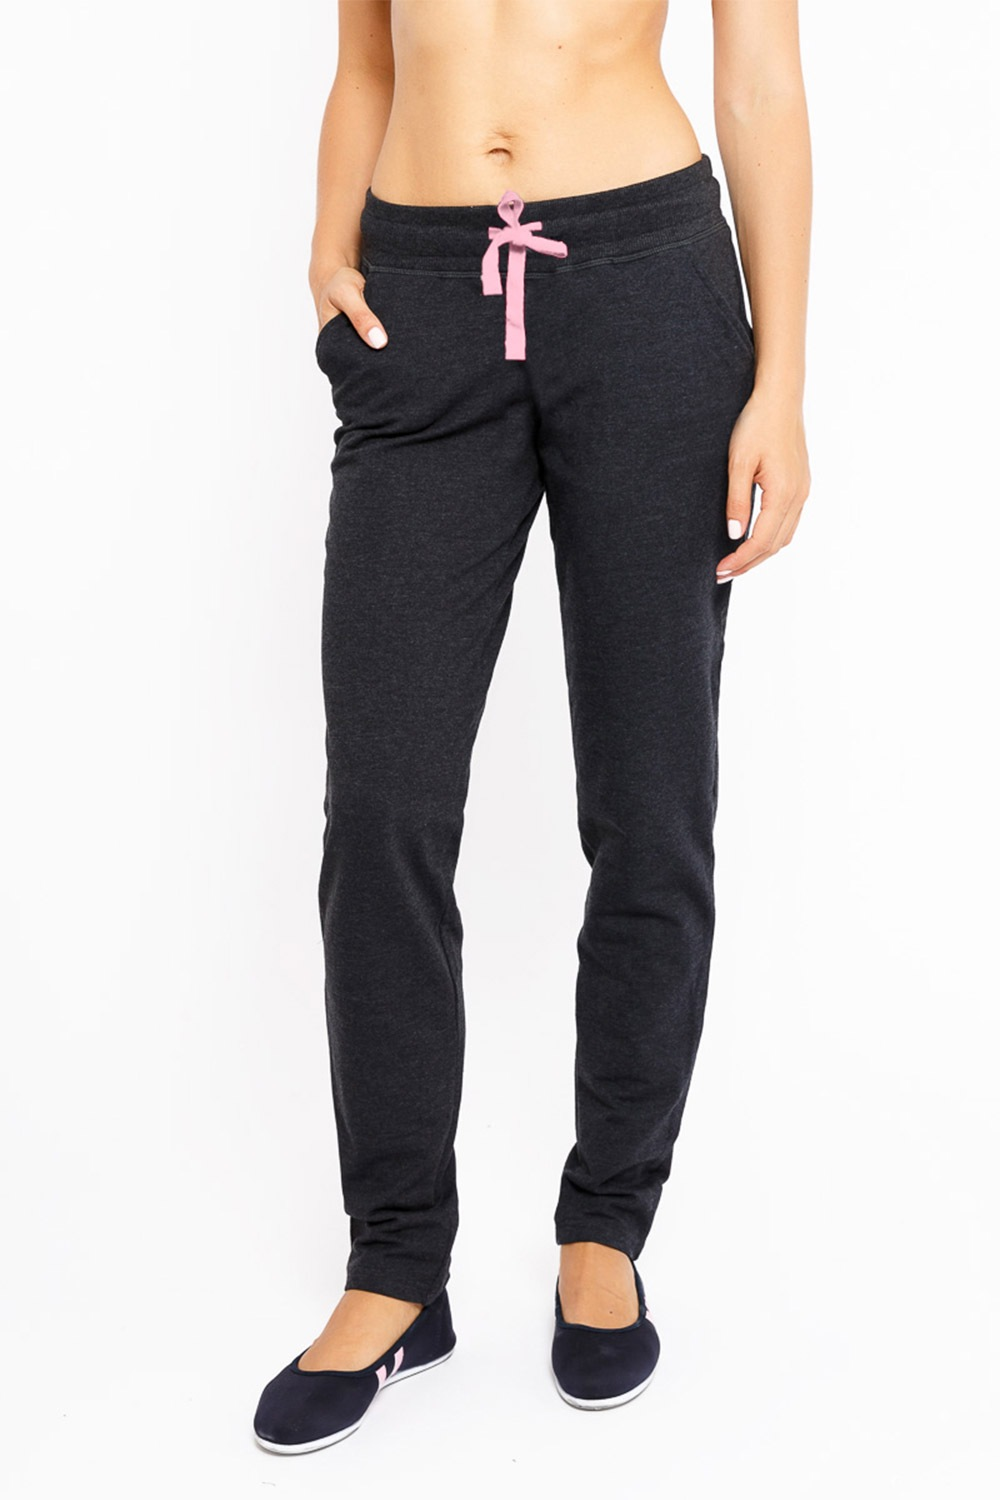 Pantalon trening de dama MF Dark Grey